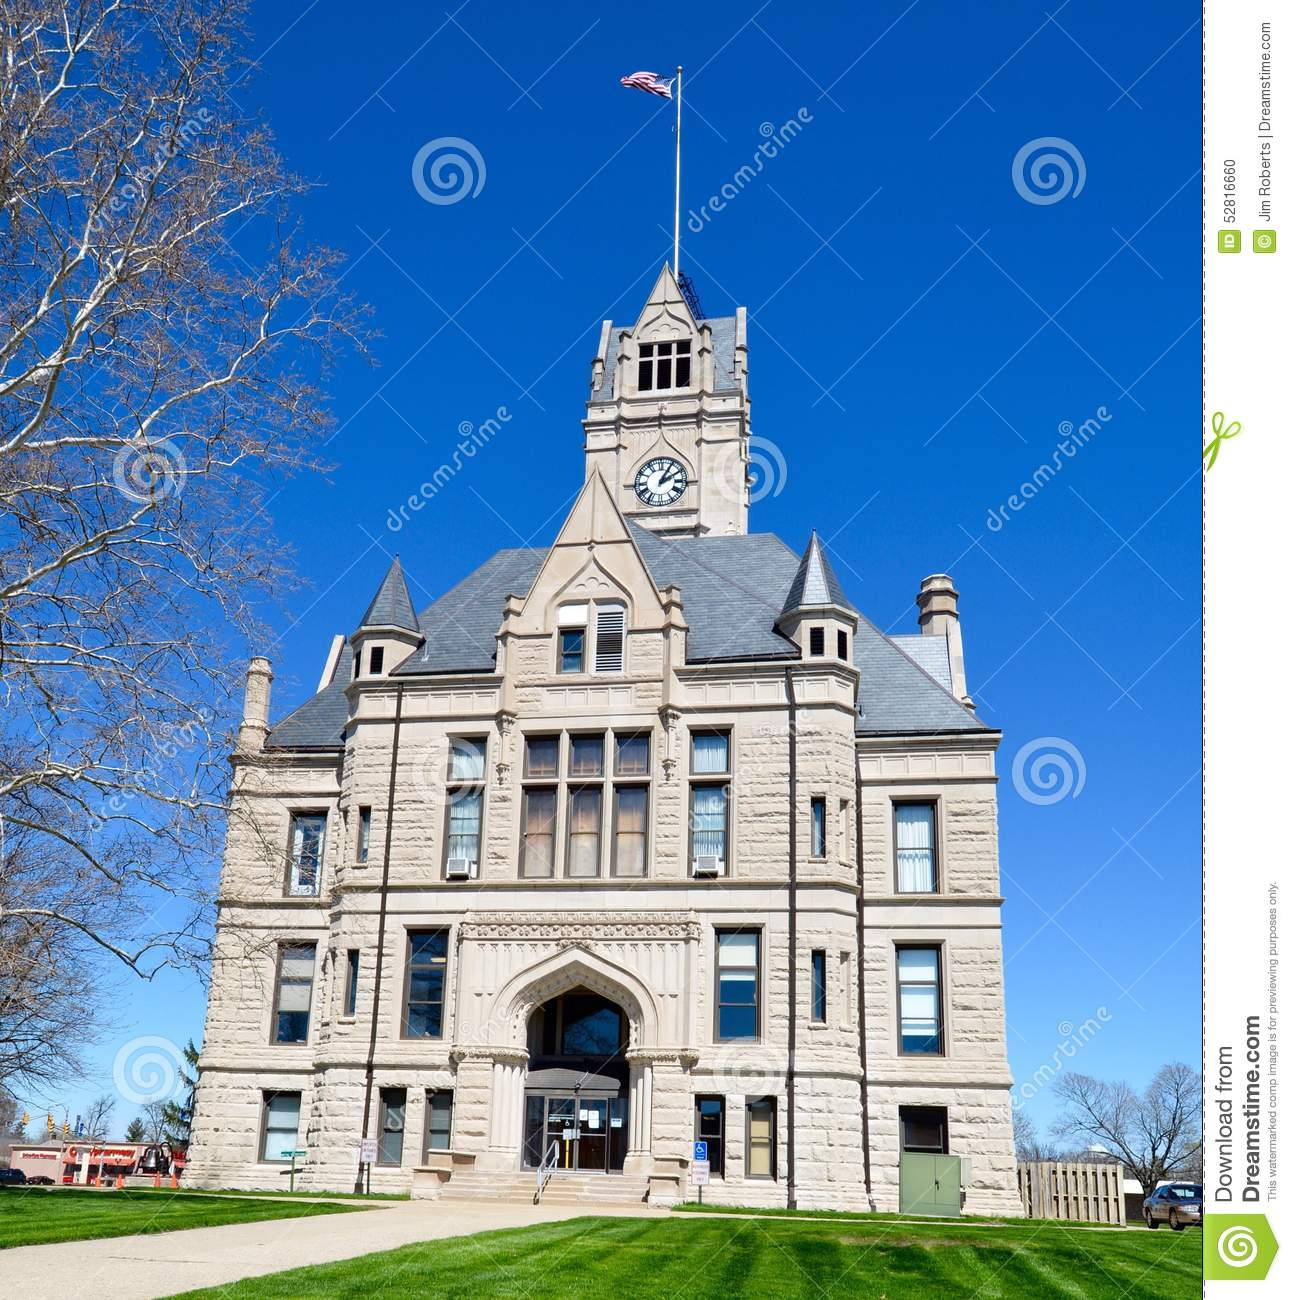 Indiana jasper county tefft - Jasper County Courthouse Editorial Image